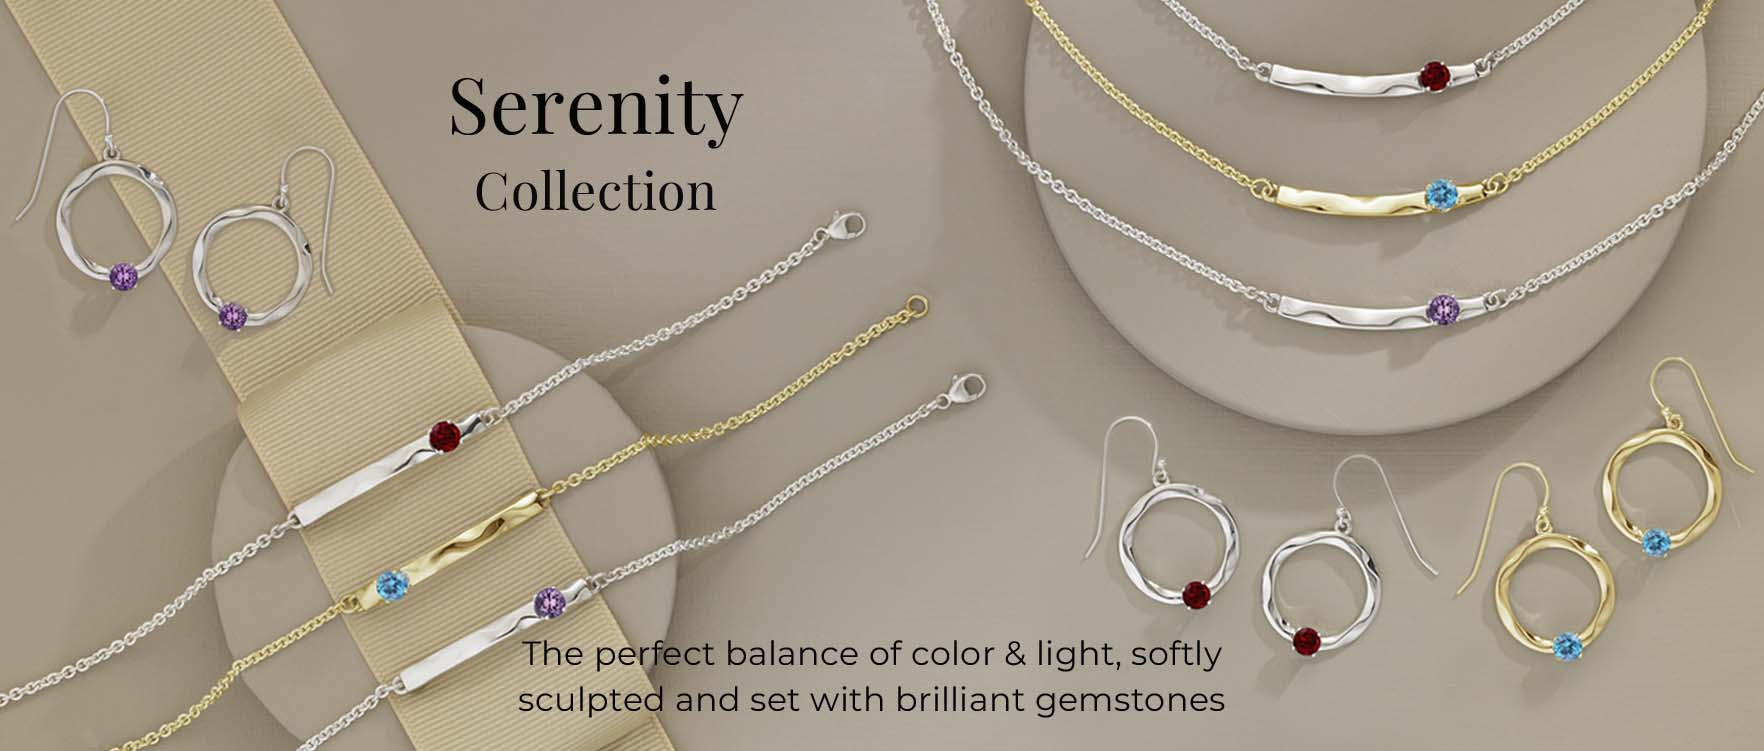 serenity-collection.jpg